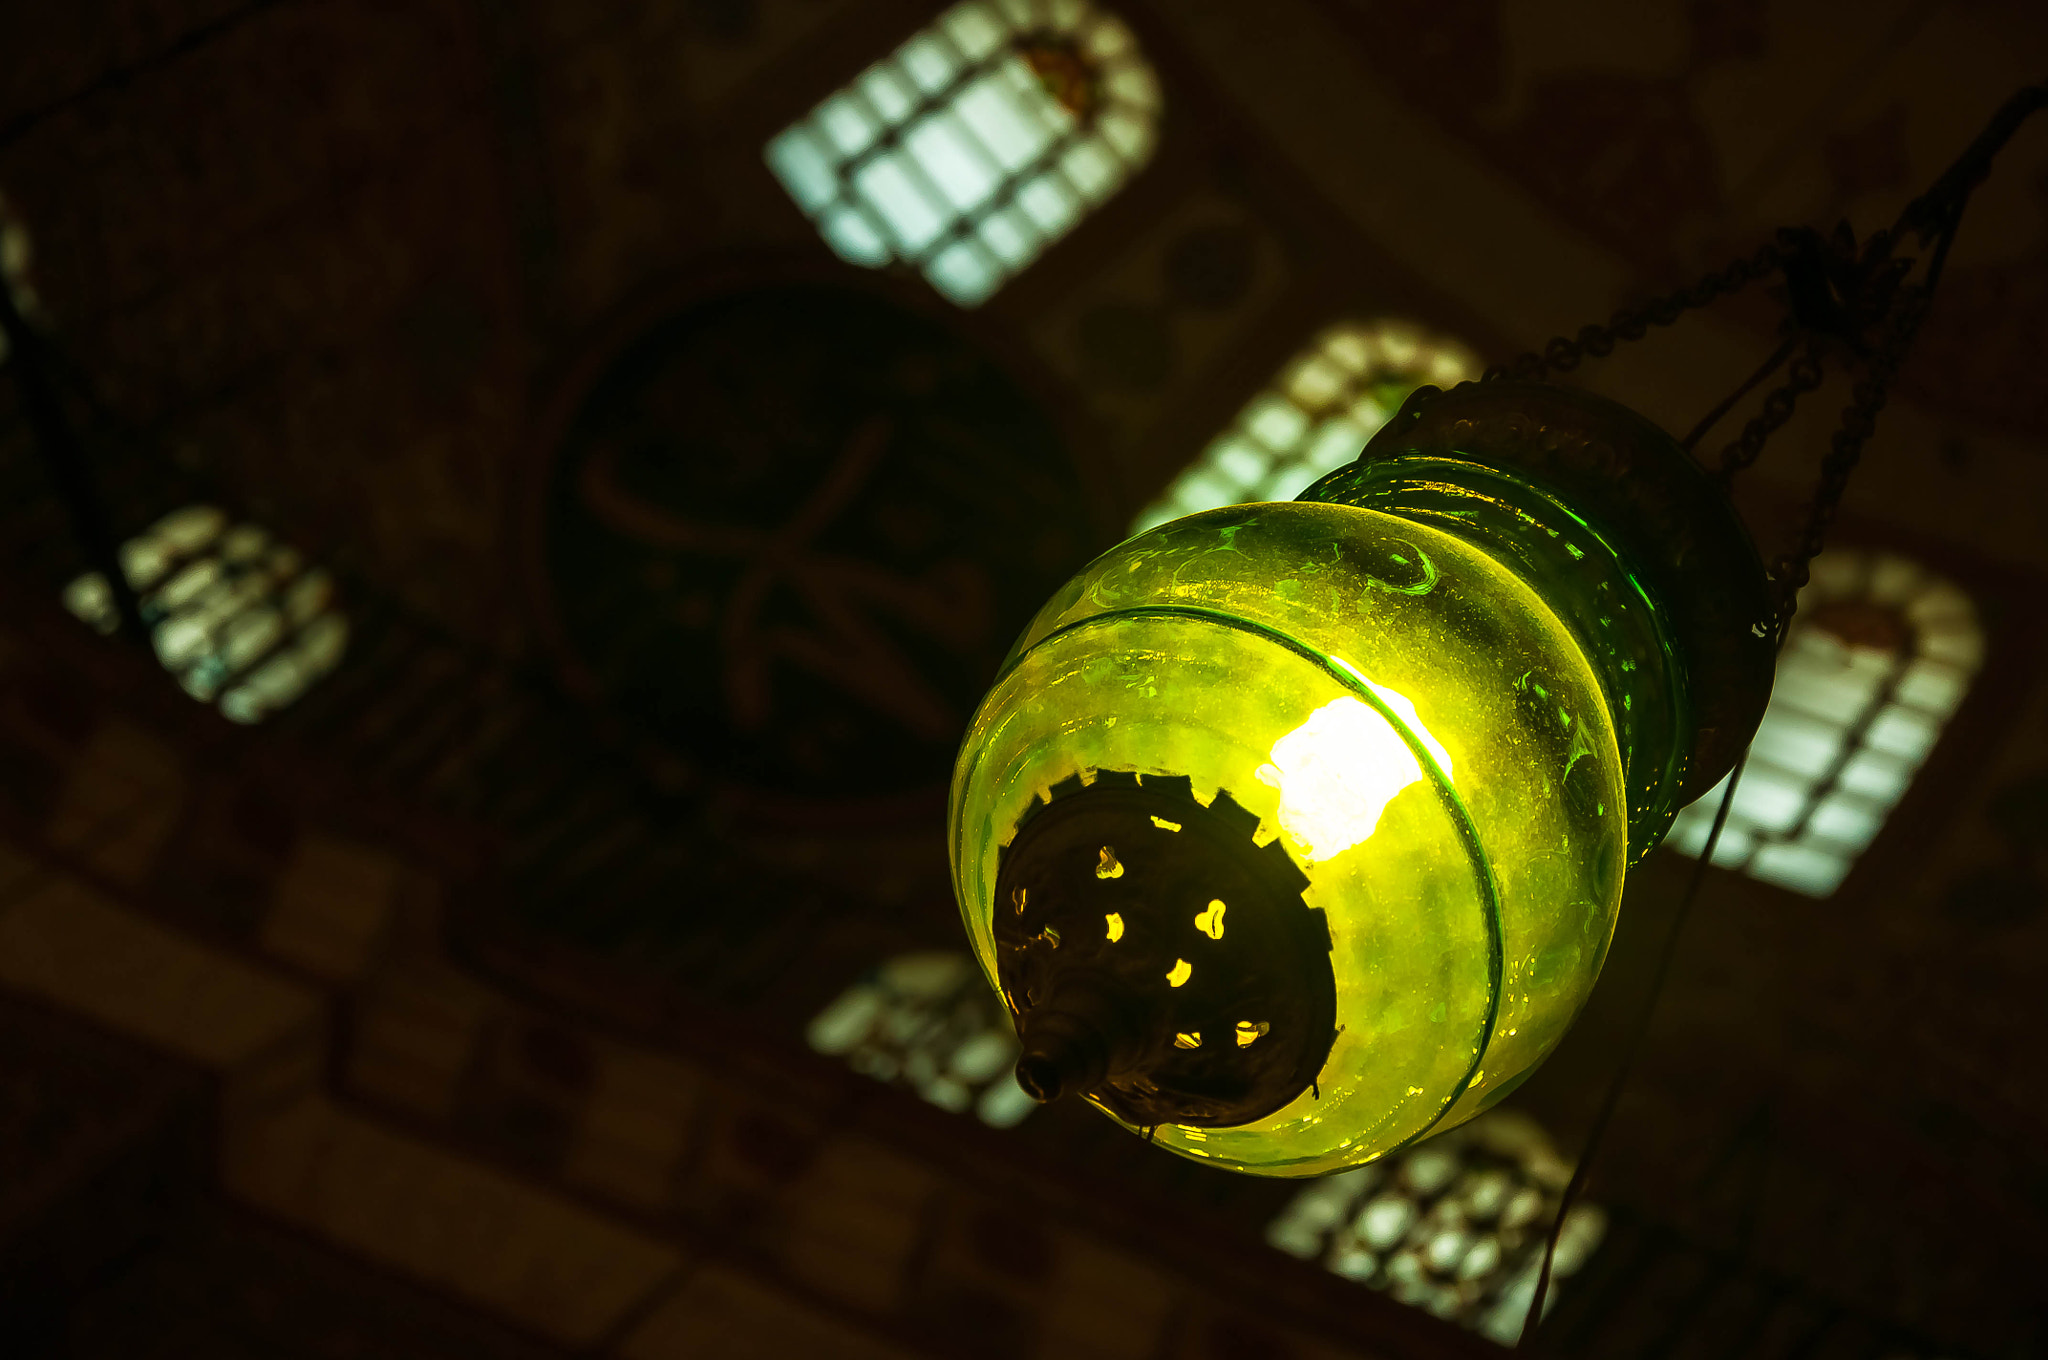 Photograph Ottoman Lights by Melih Gün on 500px